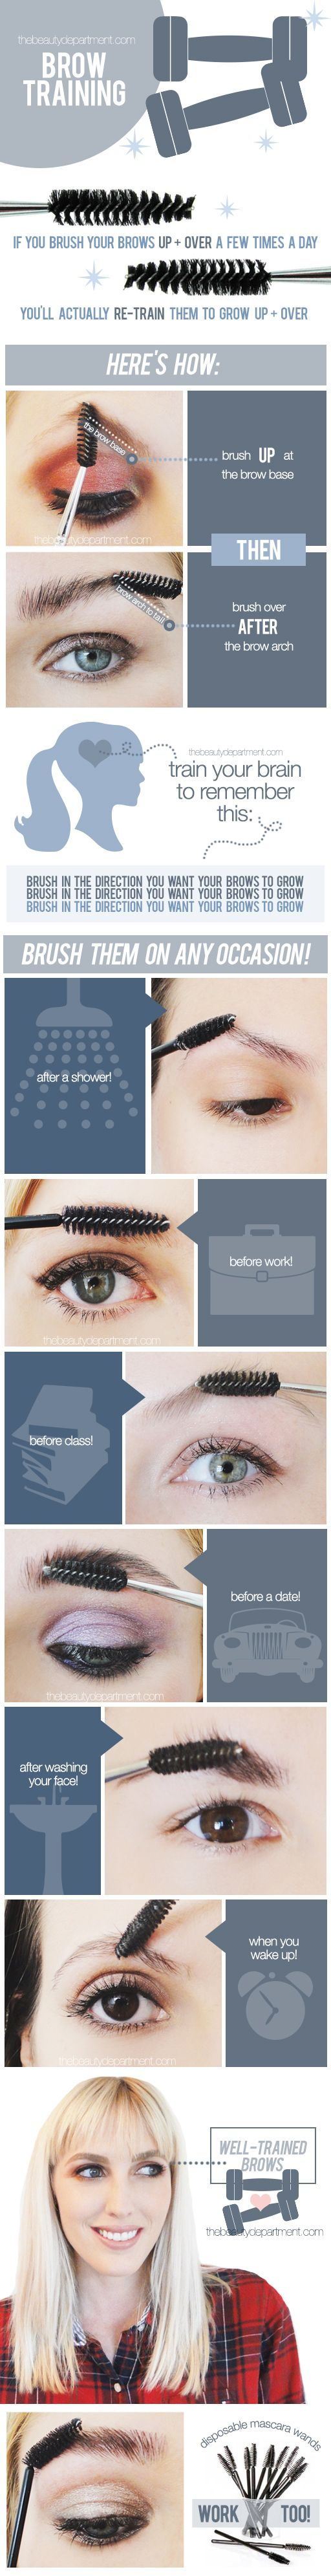 Brow Training: You can't change the direction your brows grow in, but this is a really good habit to get into to make your eyebrows look perfectly groomed #infographic...x